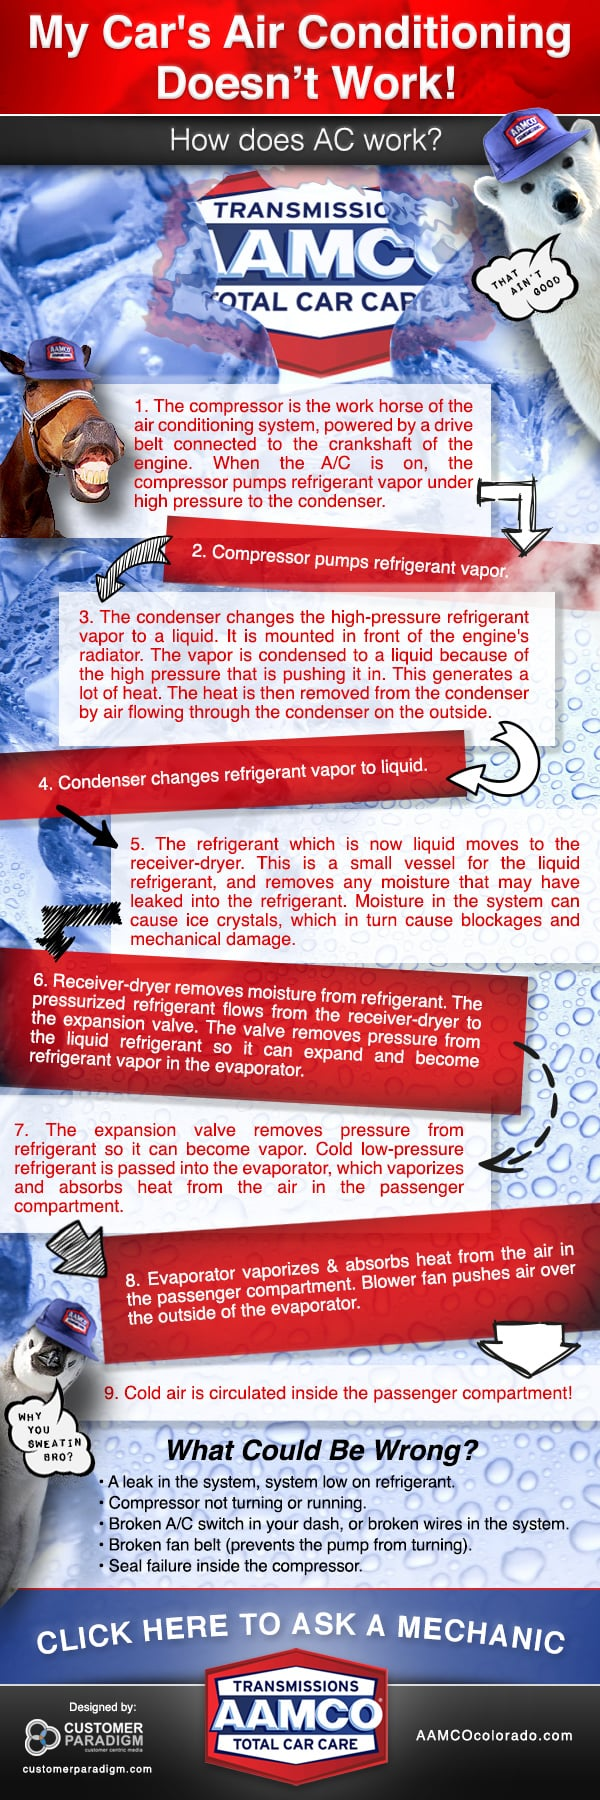 Infographic - How a Car's Air Conditioning Works